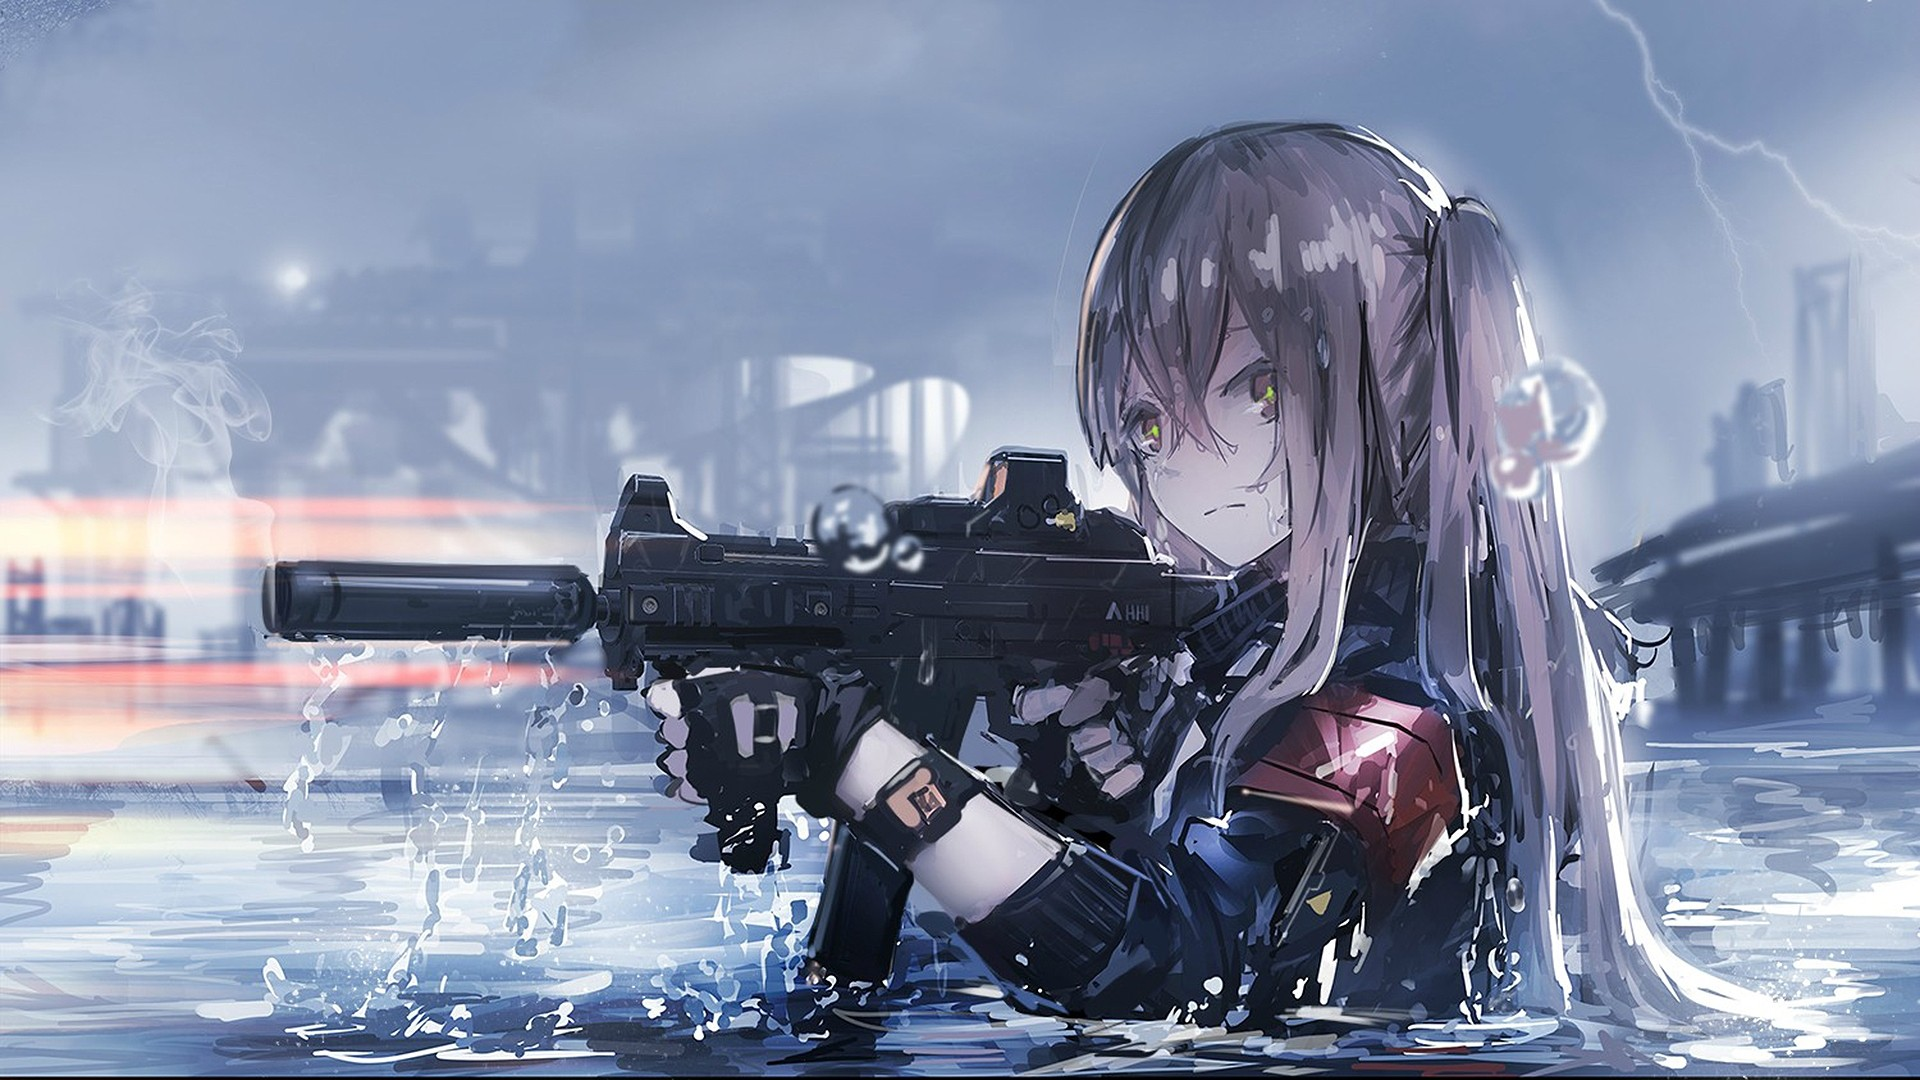 Anime Girls with Guns Wallpapers: 10+ Images - WallpaperBoat